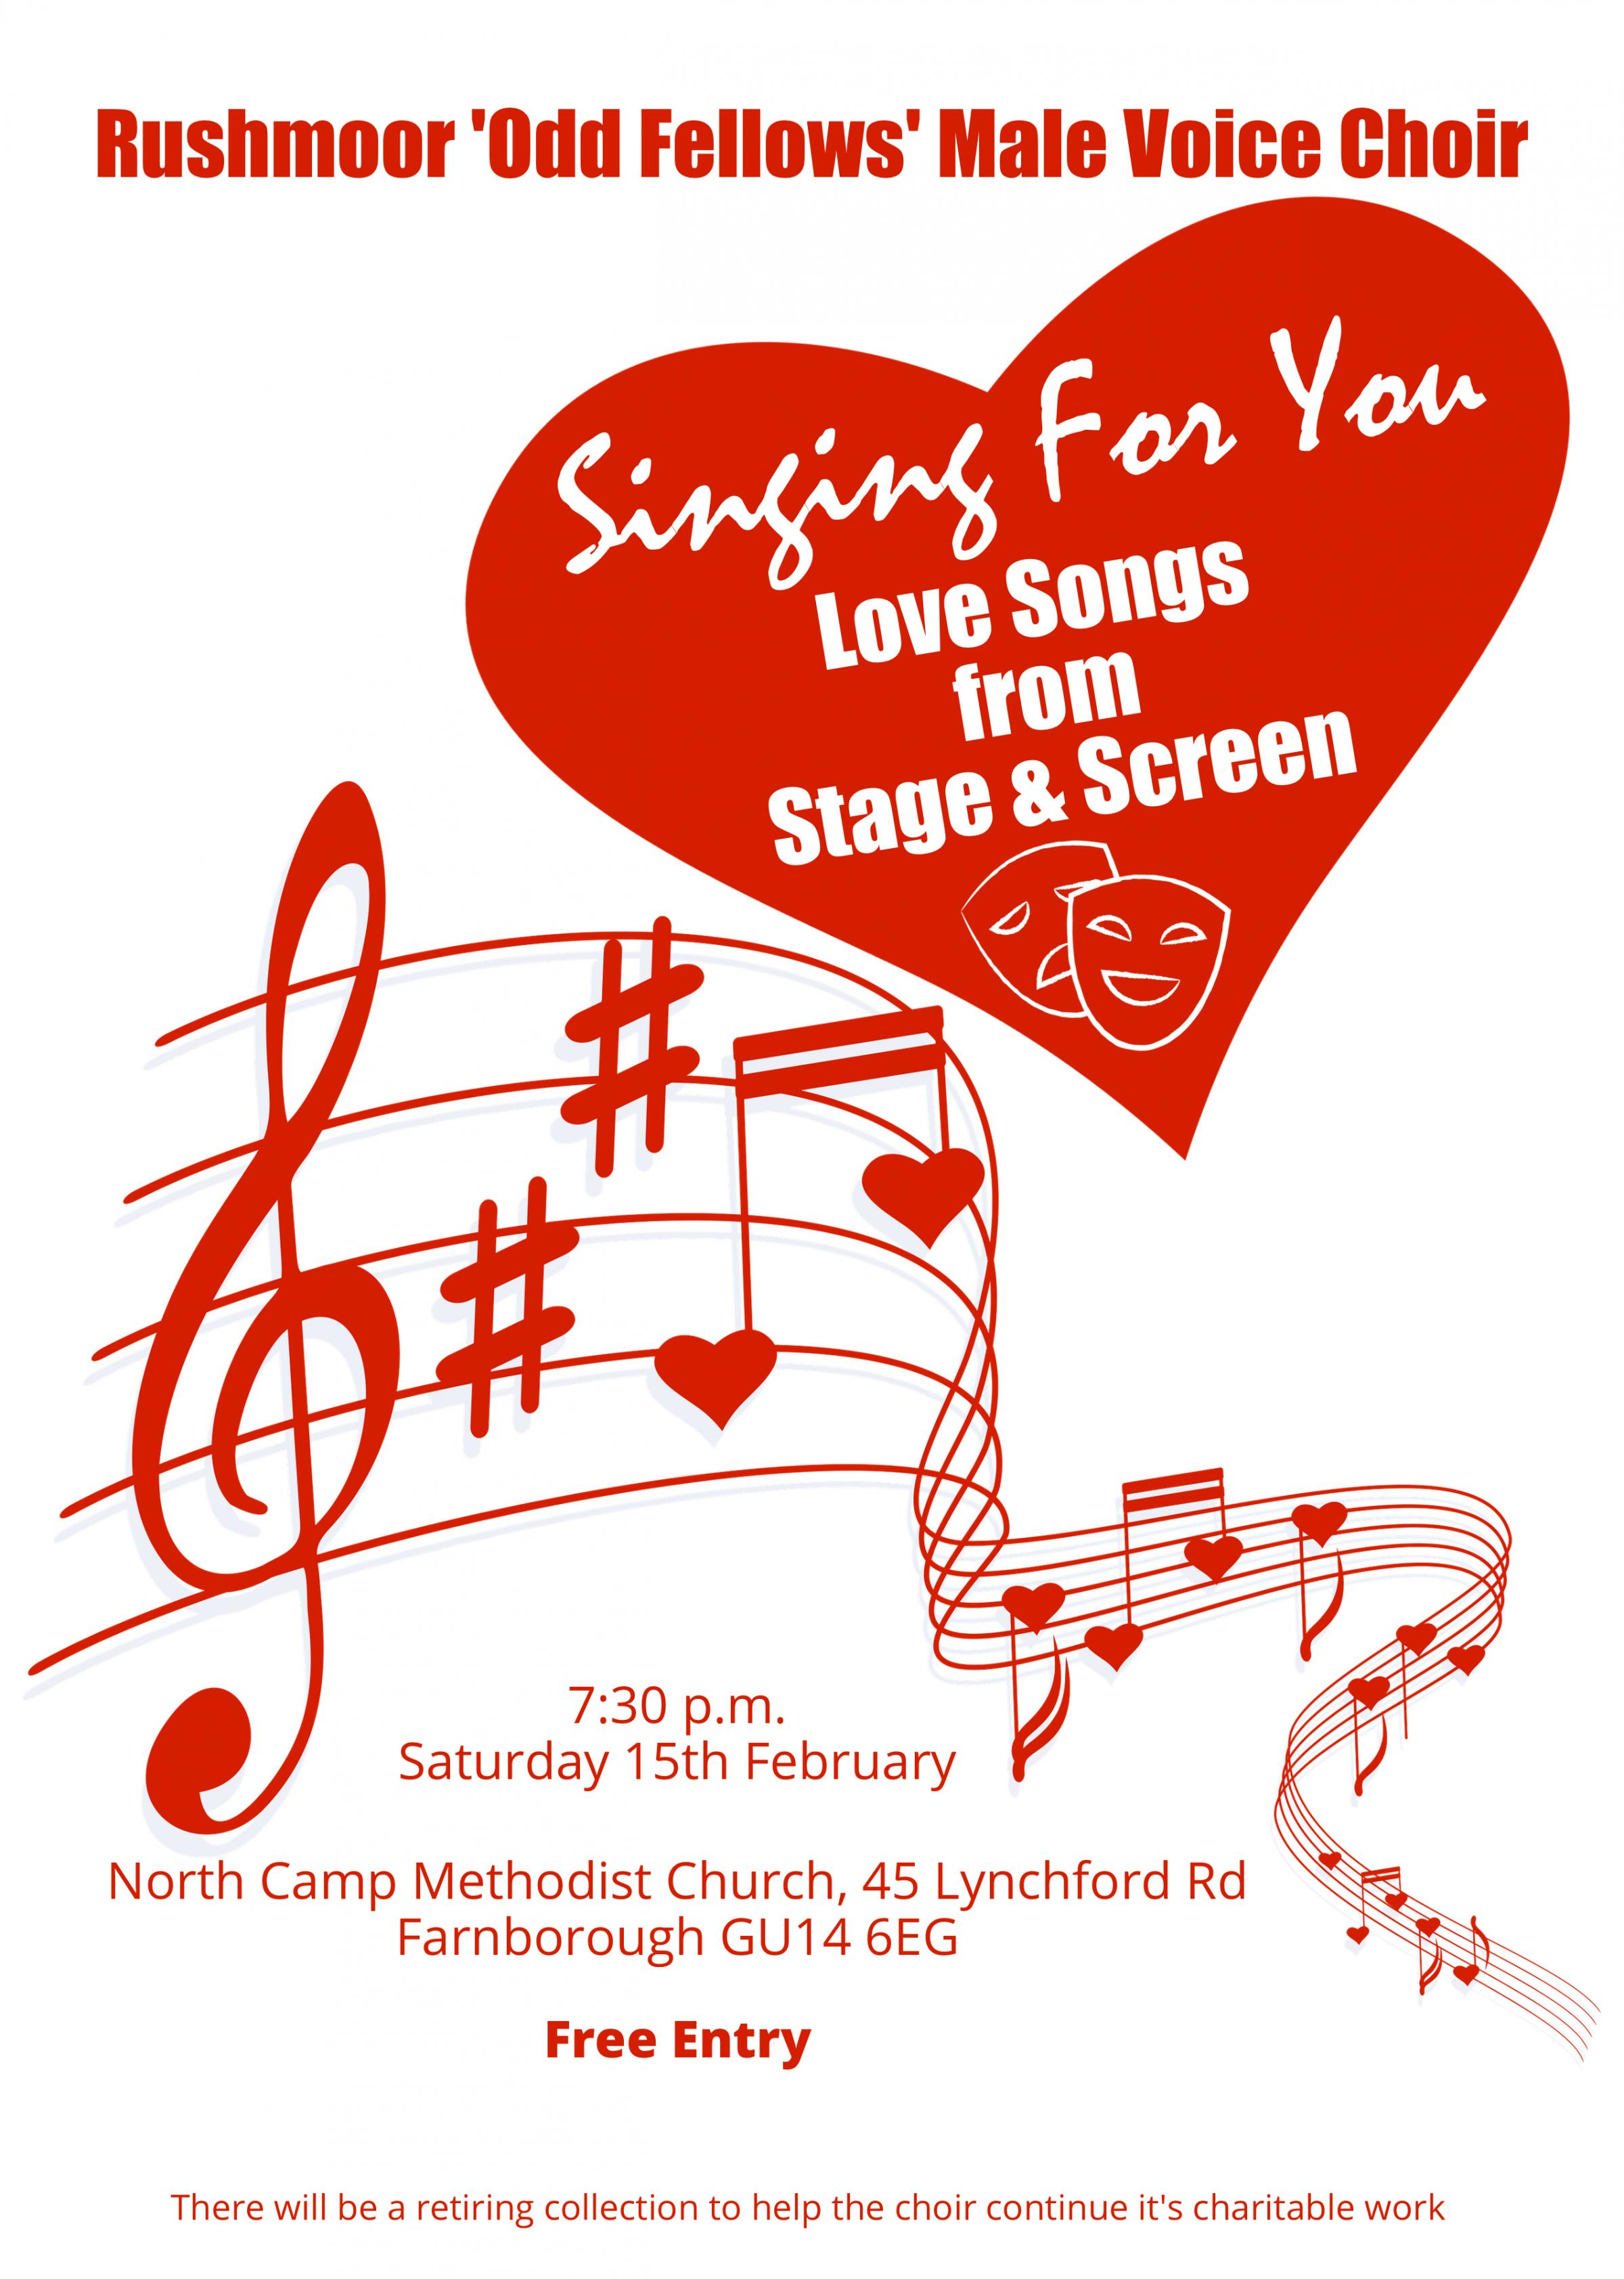 Rushmoor Male Voice Choir Valentines Concert